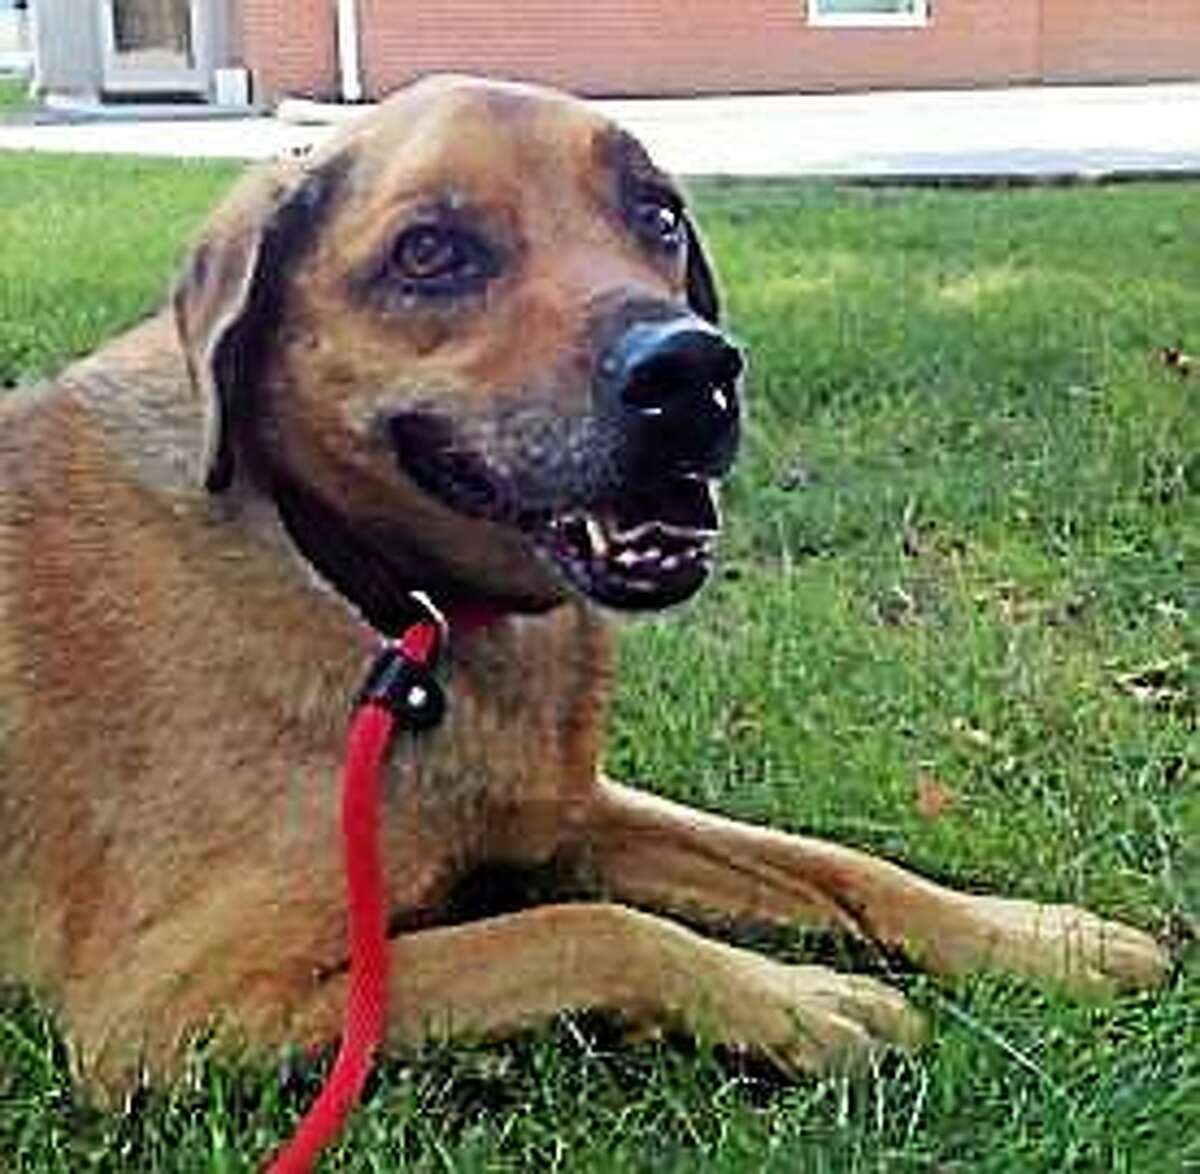 Cochise Cochise is an older Hound mix, 10-years-old and in need of a new family and a place to call home. He would love a bit of exercise, a little entertainment, and a comfy place to rest his head. Cochise is currently staying in a foster home. Please call Adoptions (860-594-4500, ext. 6100) to make an appointment to meet this handsome guy. Inquiries for adoption should be made at the Connecticut Humane Society located at 701 Russell Road in Newington or by calling (860) 594-4500 or toll free at 1-800-452-0114.